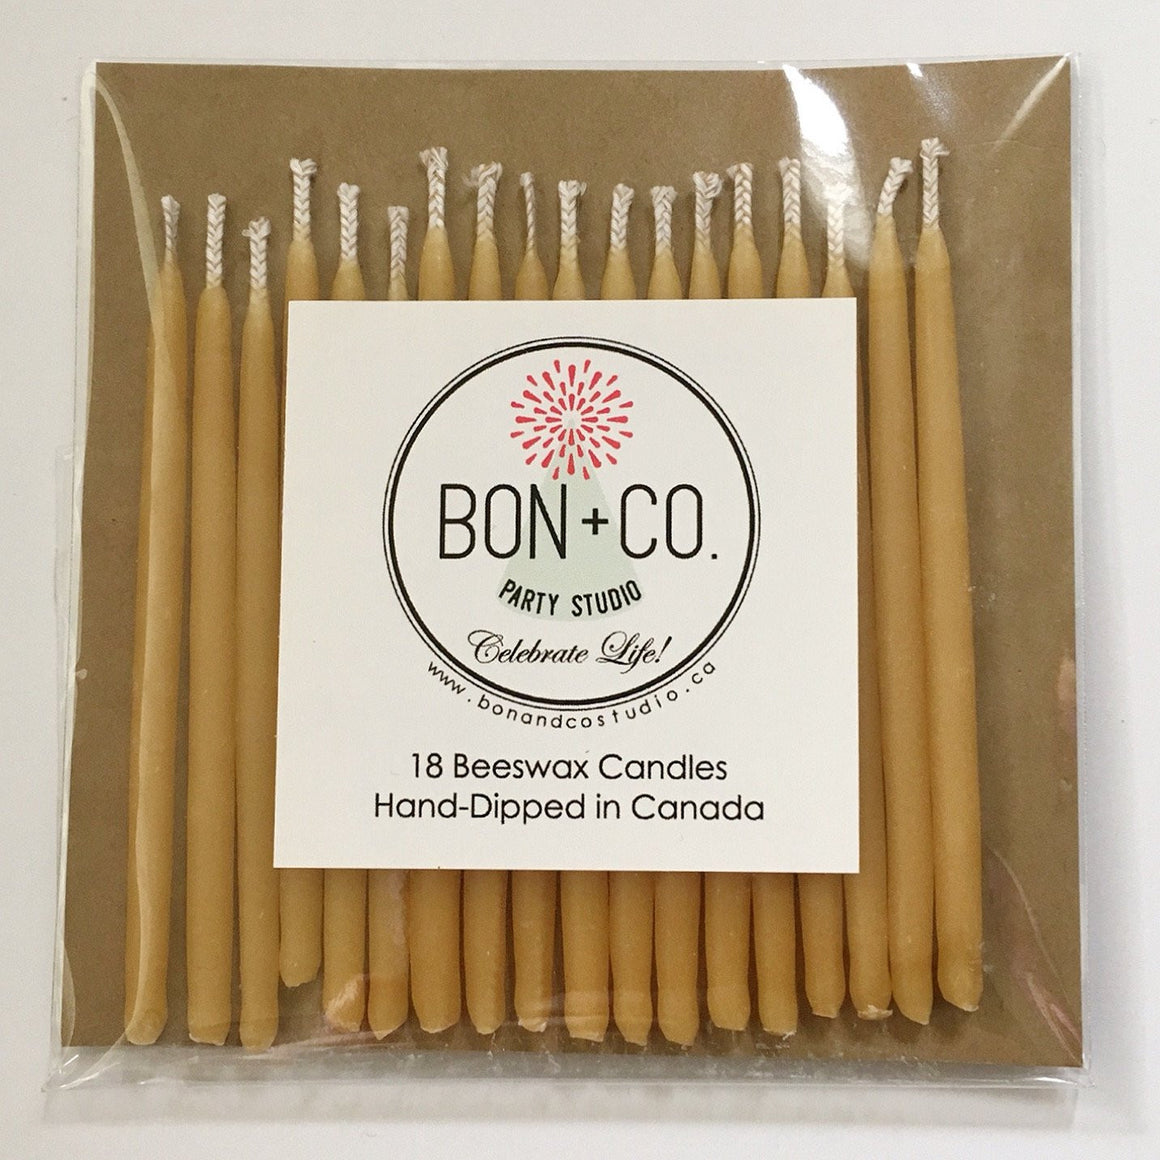 "CANDLES 3"" BEESWAX - SOLID NATURAL, Candles + Sparklers, BON + CO - Bon + Co. Party Studio"